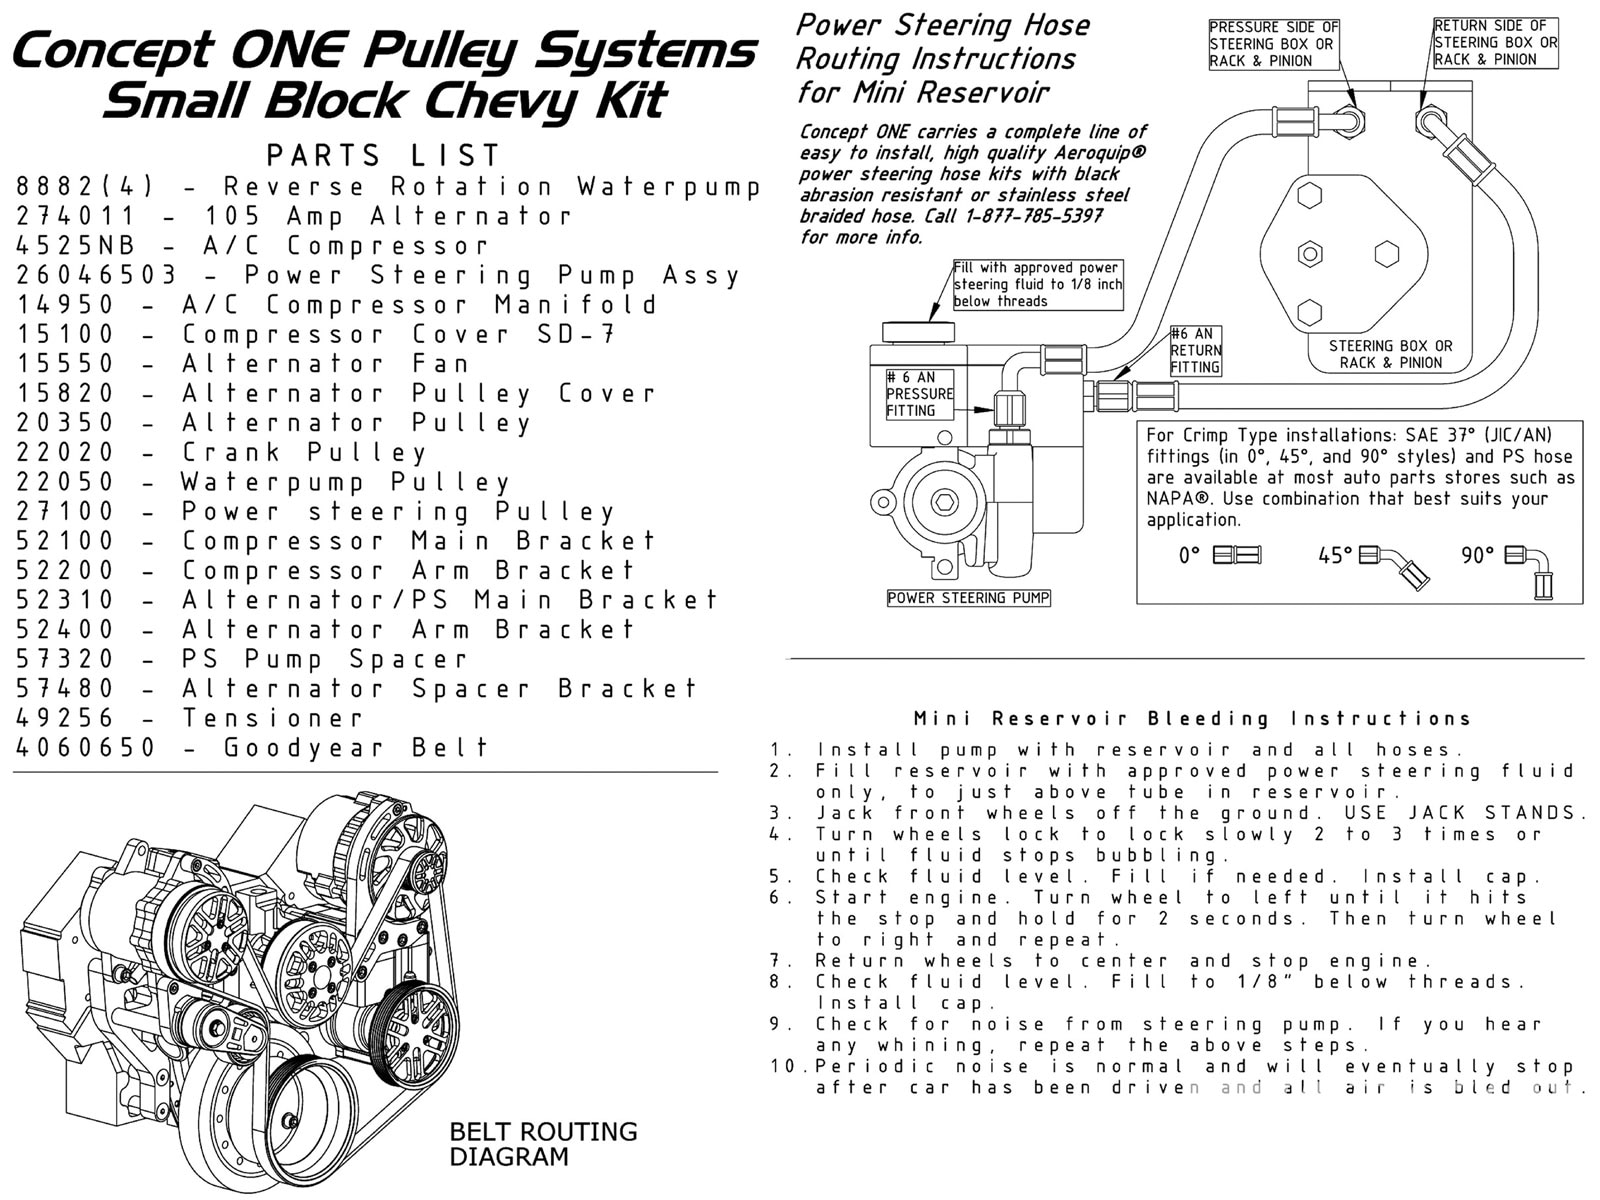 Concept One Pulley Kit